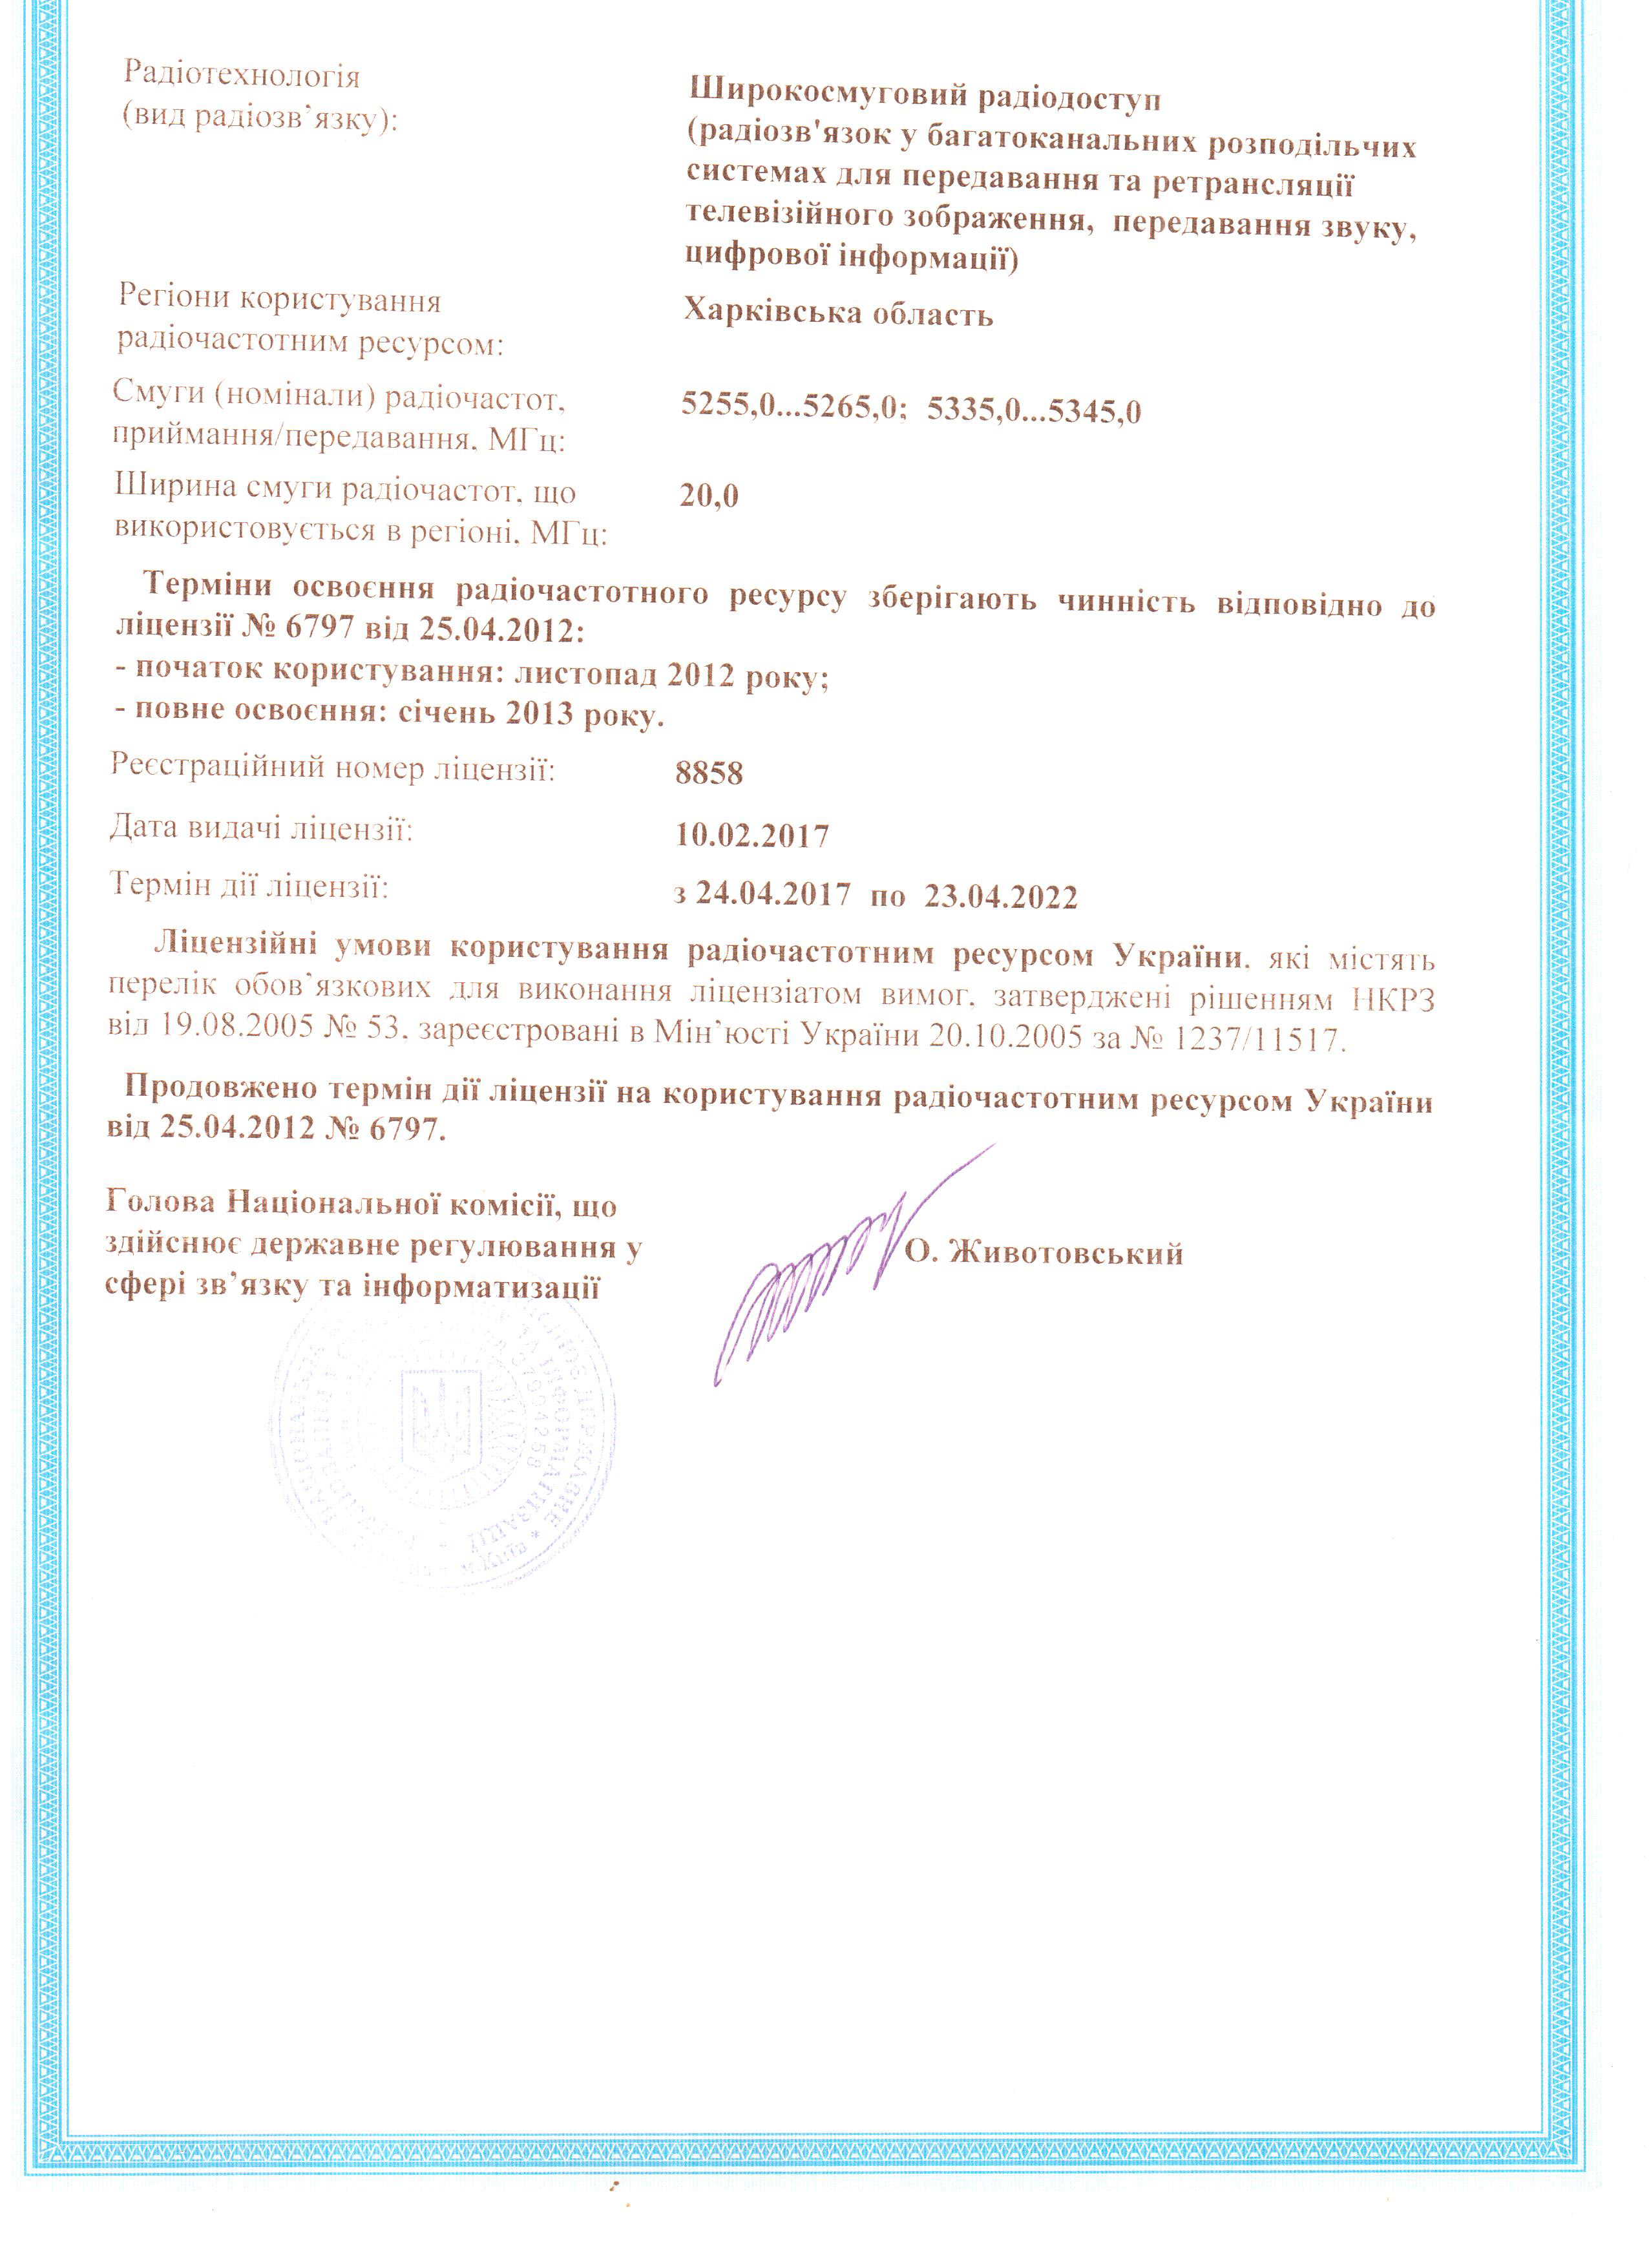 new-licence